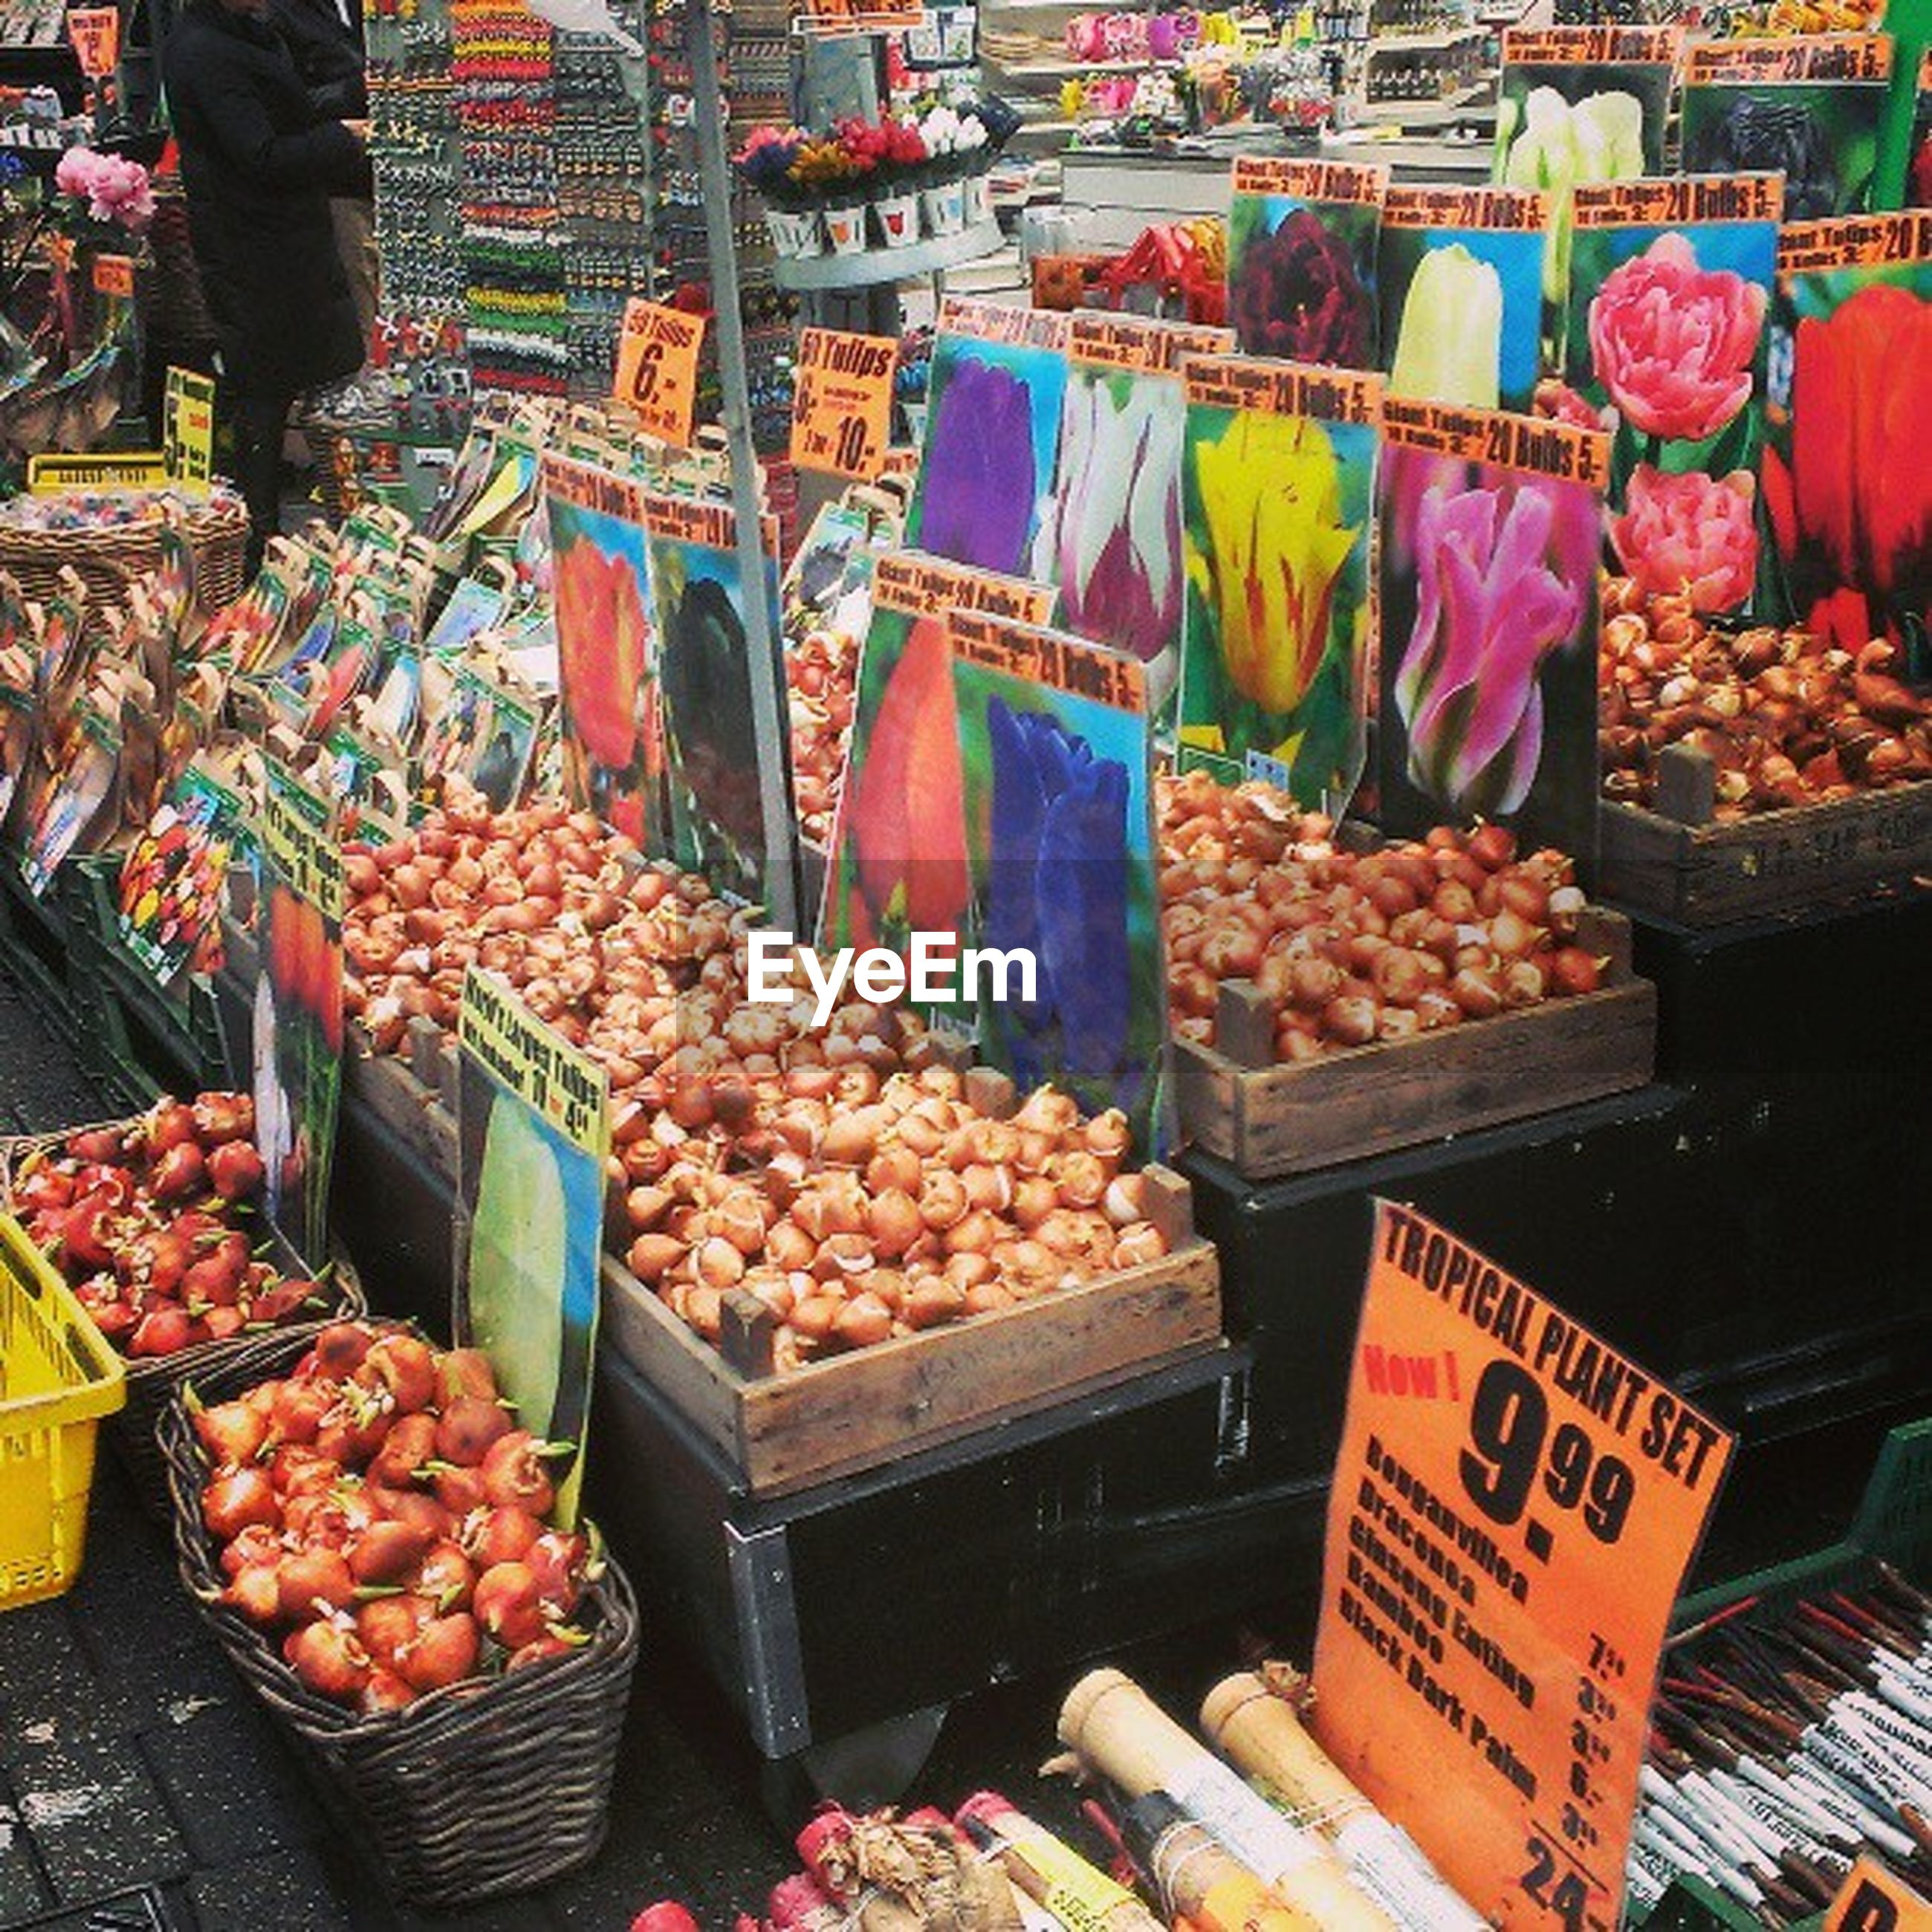 for sale, food and drink, food, retail, market, market stall, freshness, healthy eating, abundance, large group of objects, choice, variation, display, vegetable, sale, price tag, small business, consumerism, selling, street market